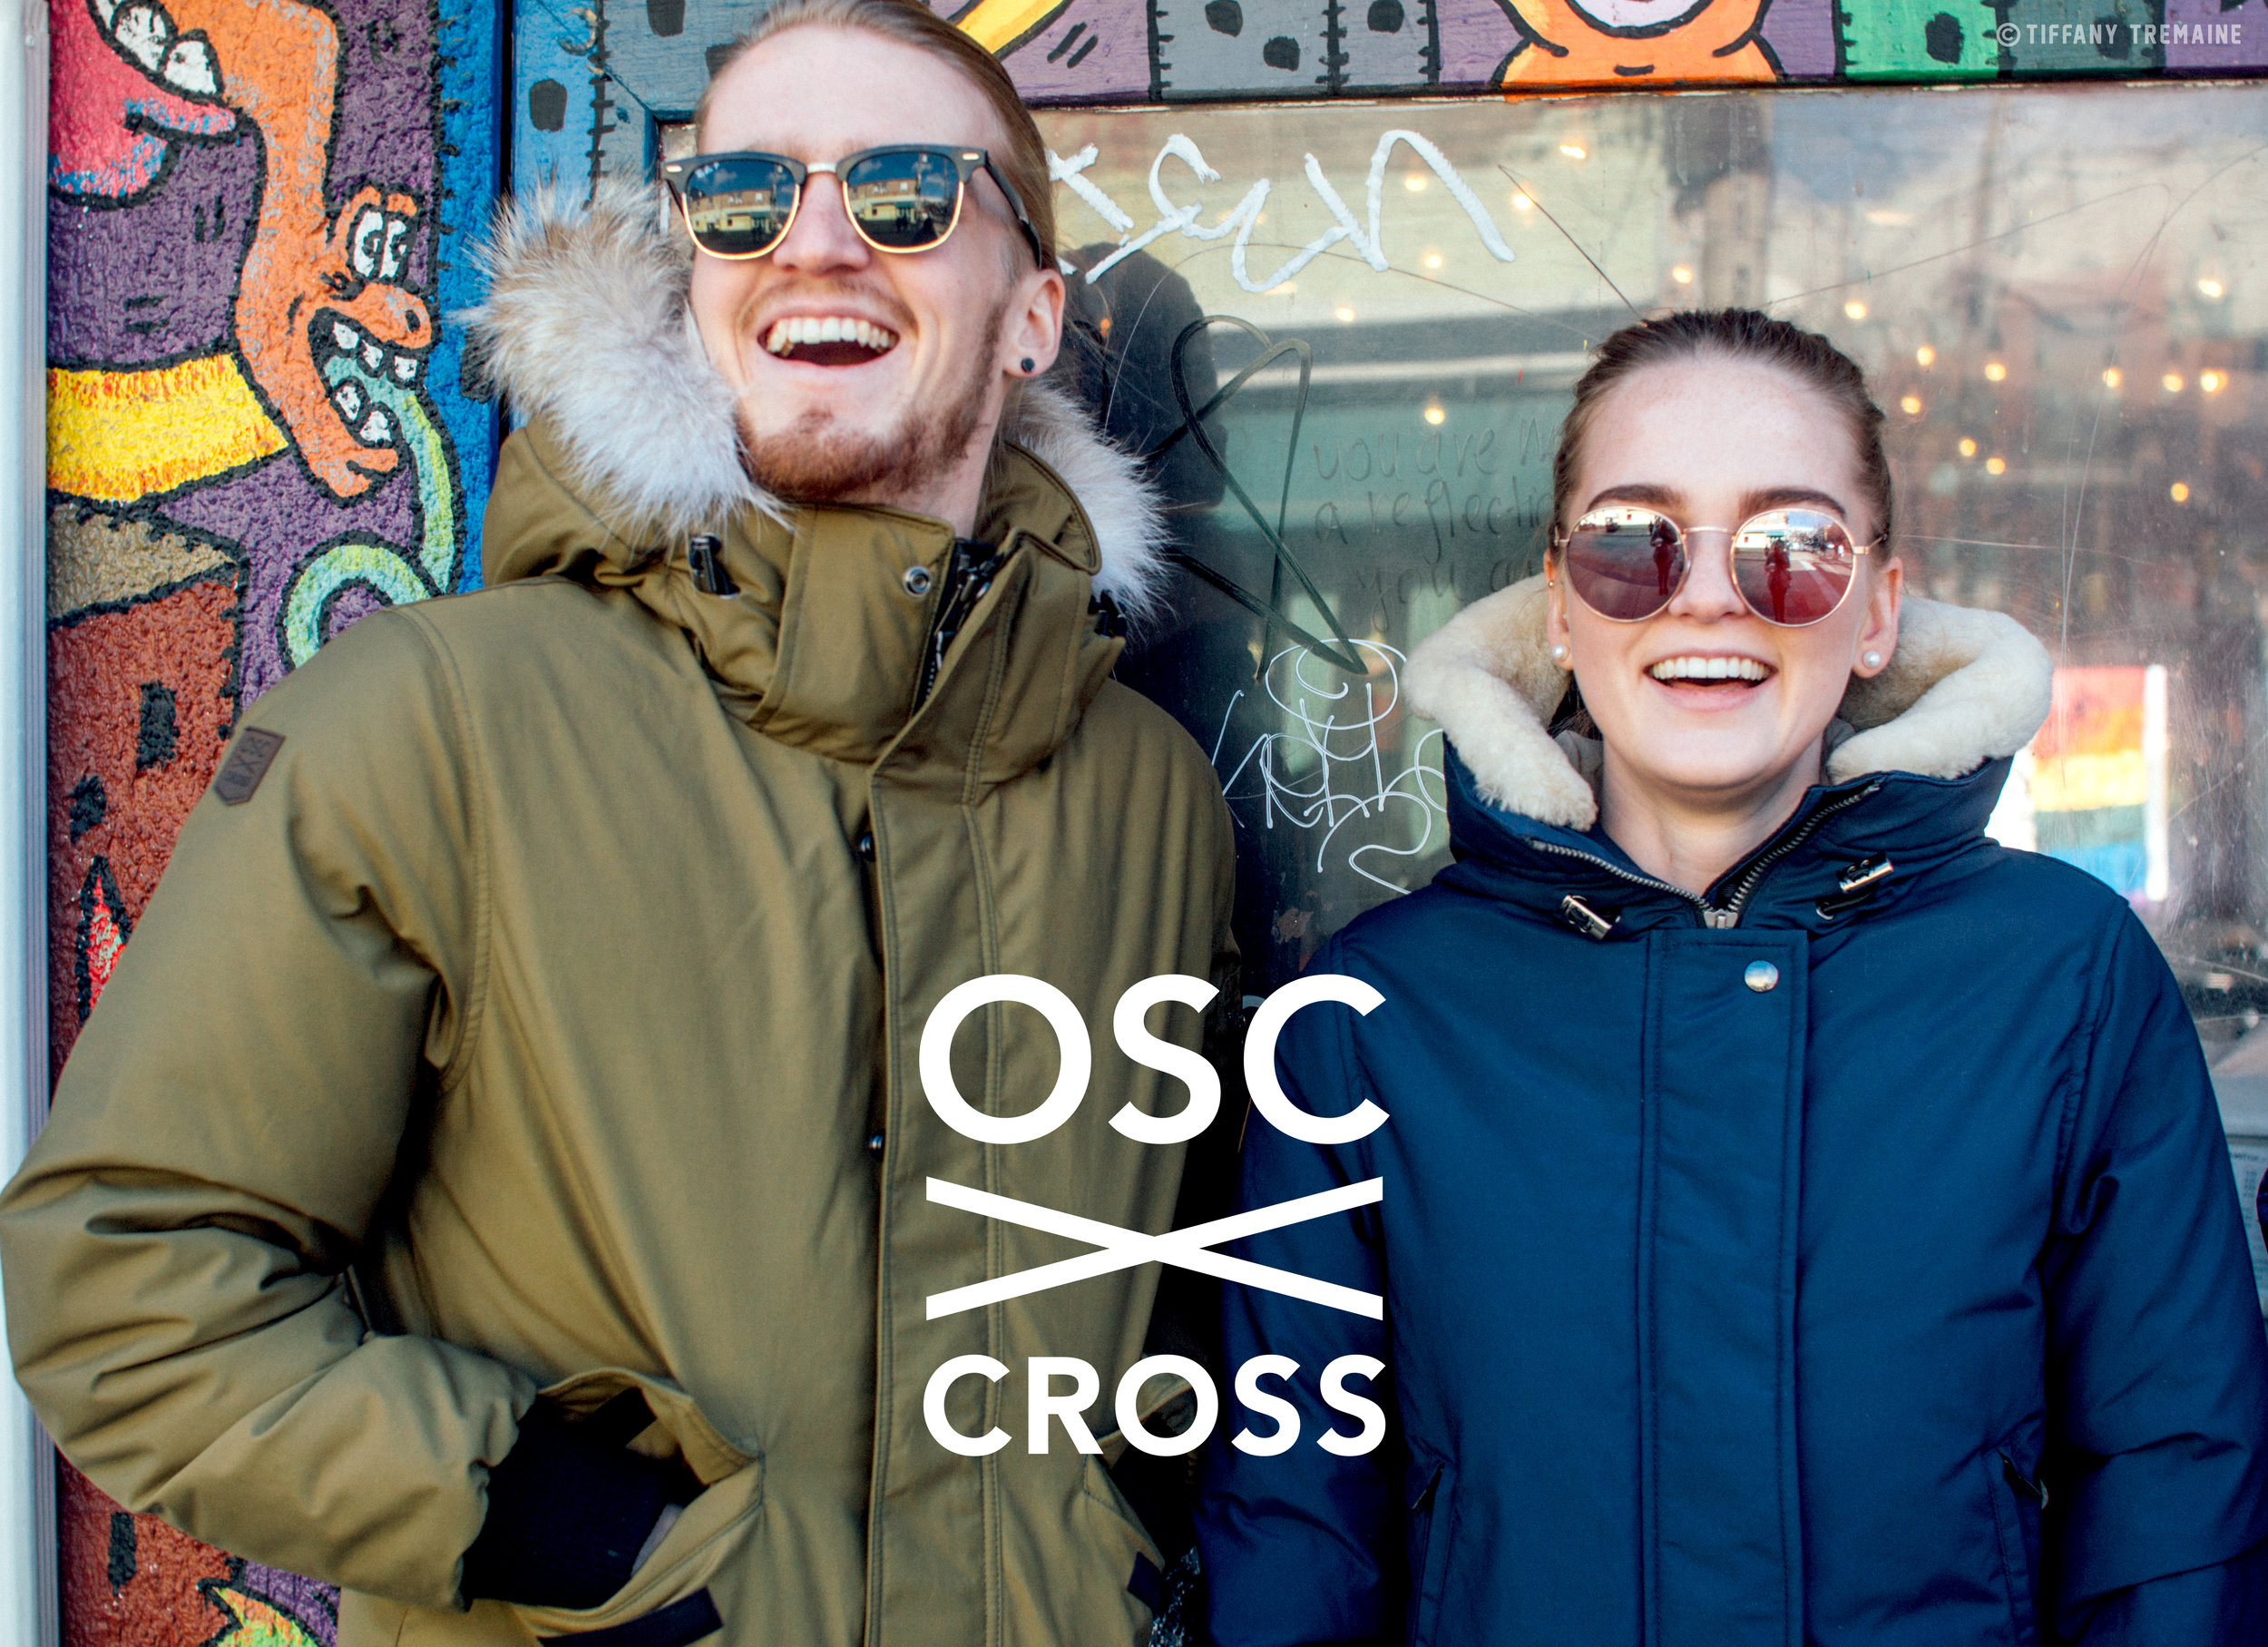 OSC Cross Social Media Post.jpg